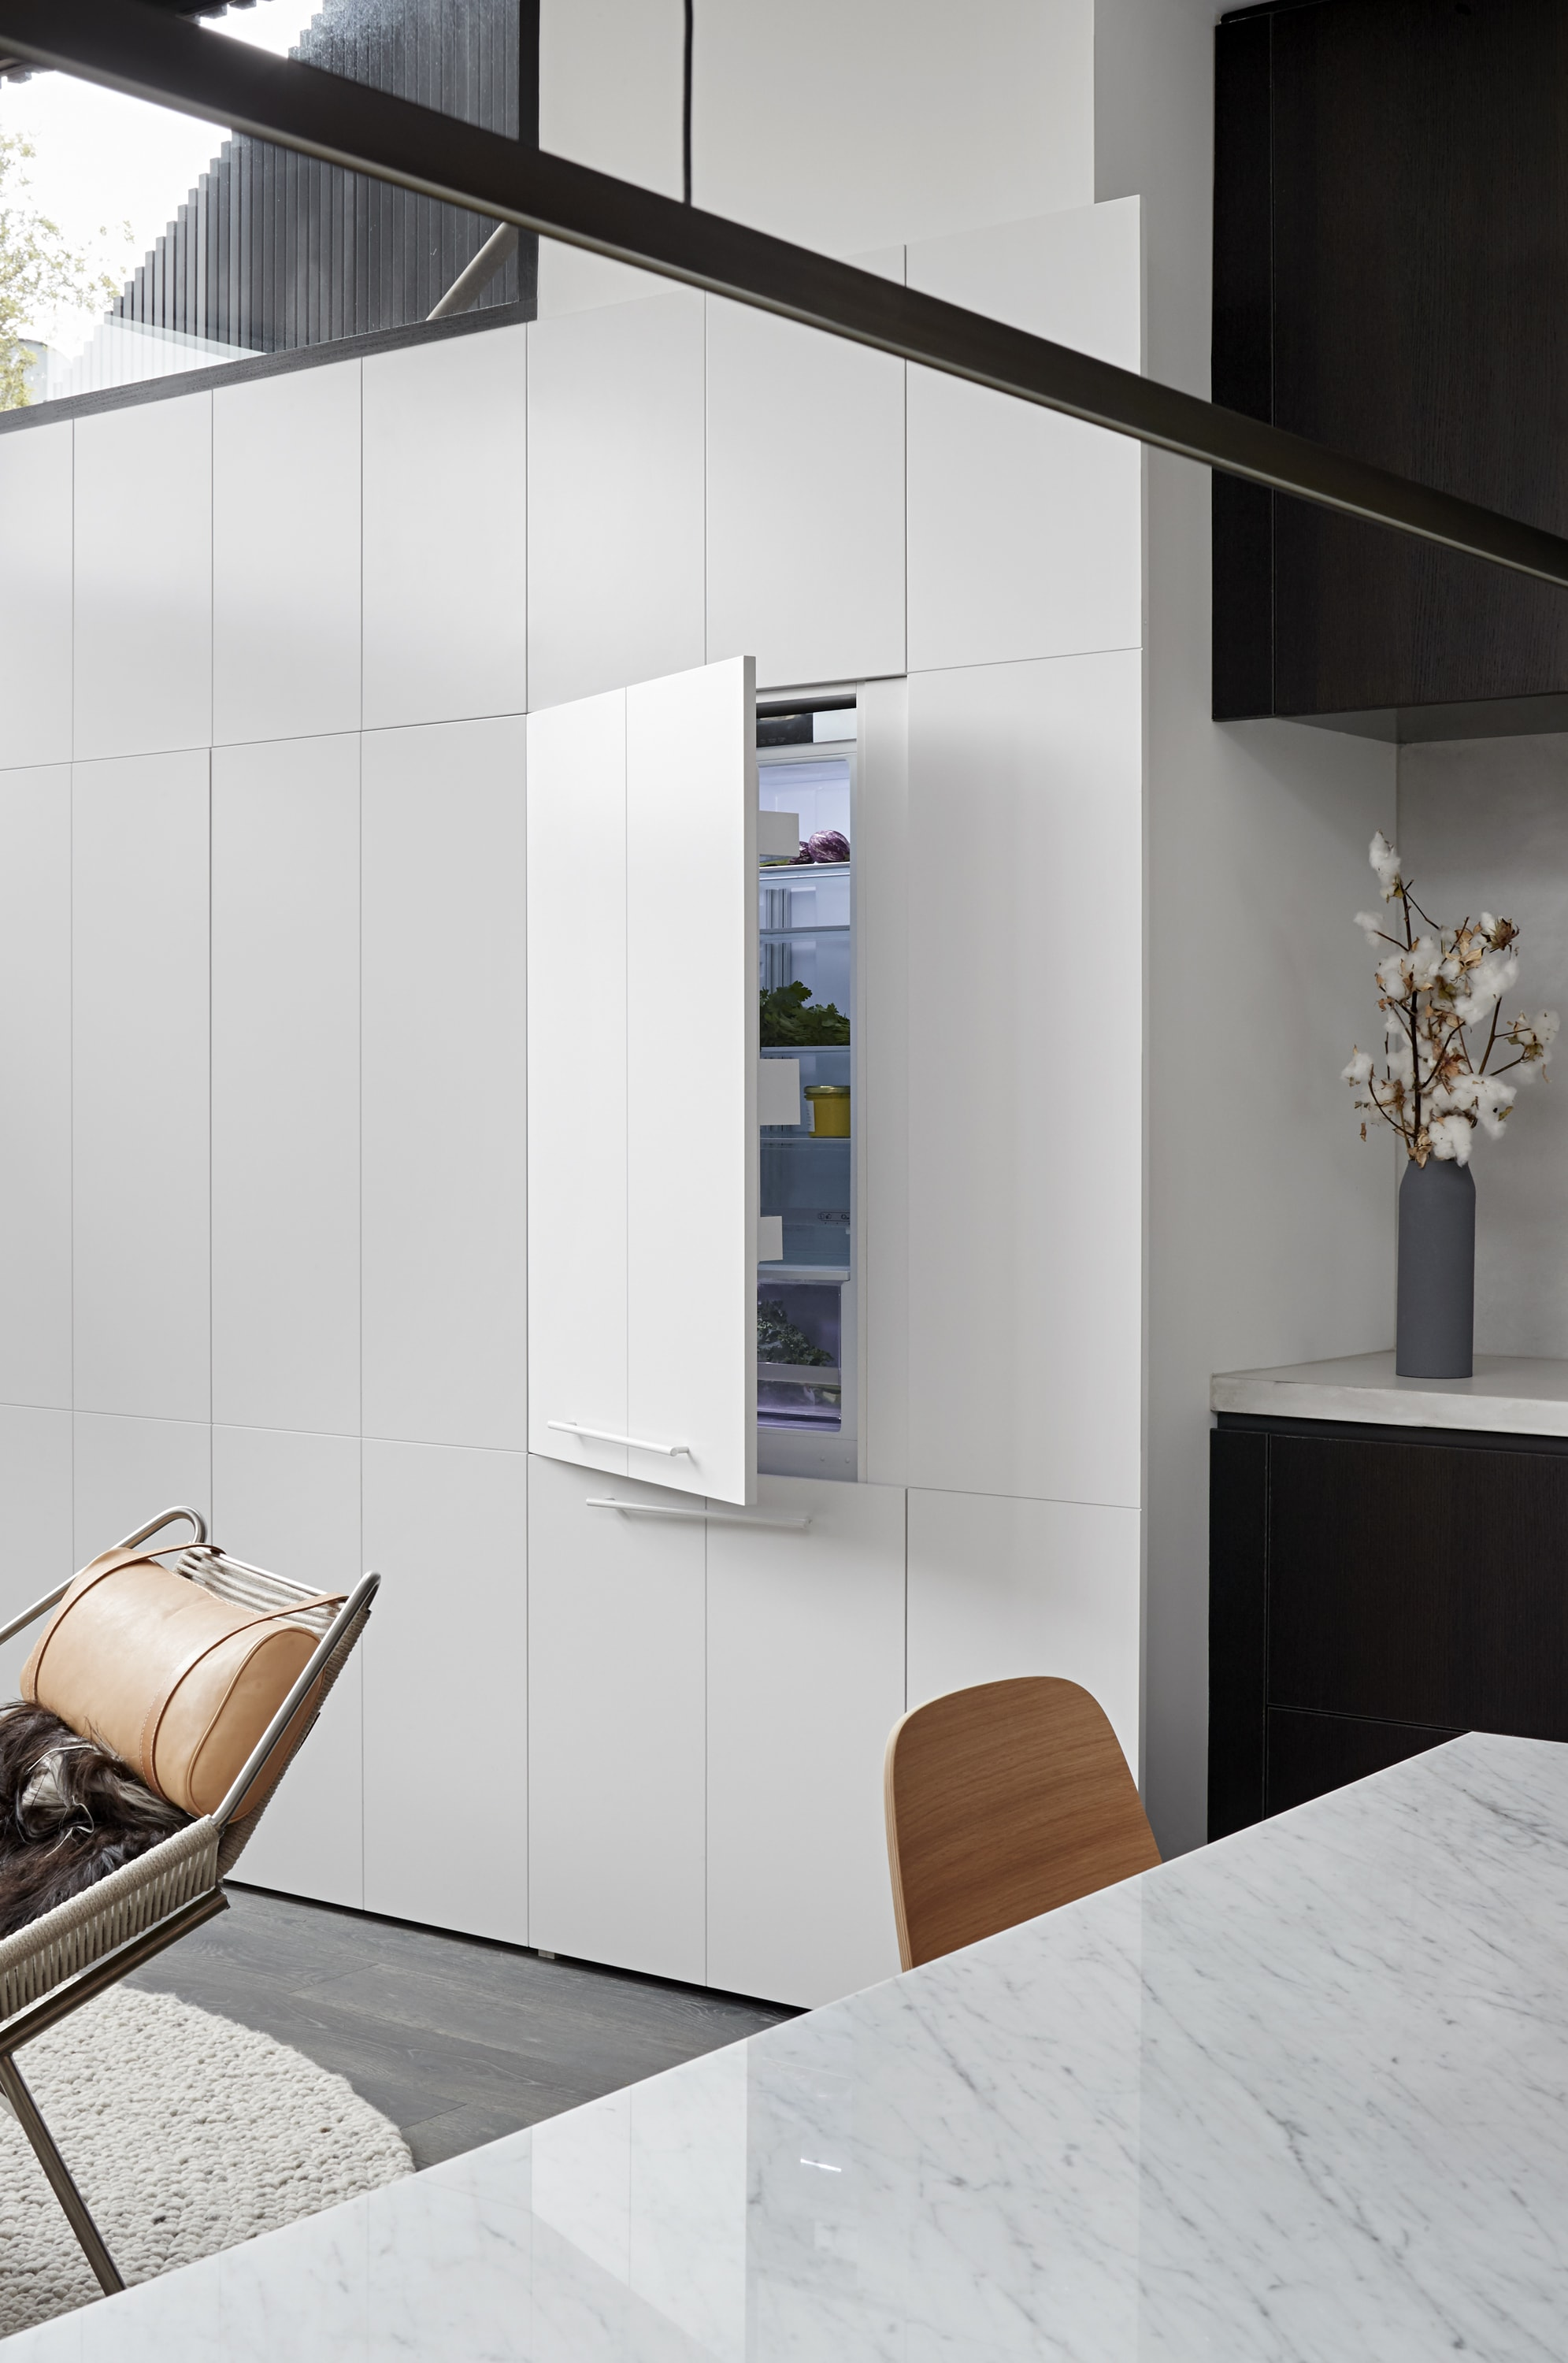 The Pocket House By Whiting Architects The Fisher & Paykel Series Melbourne, Victoria, Australiaf&p Whiting Littleogrady ©smg 9151 Min